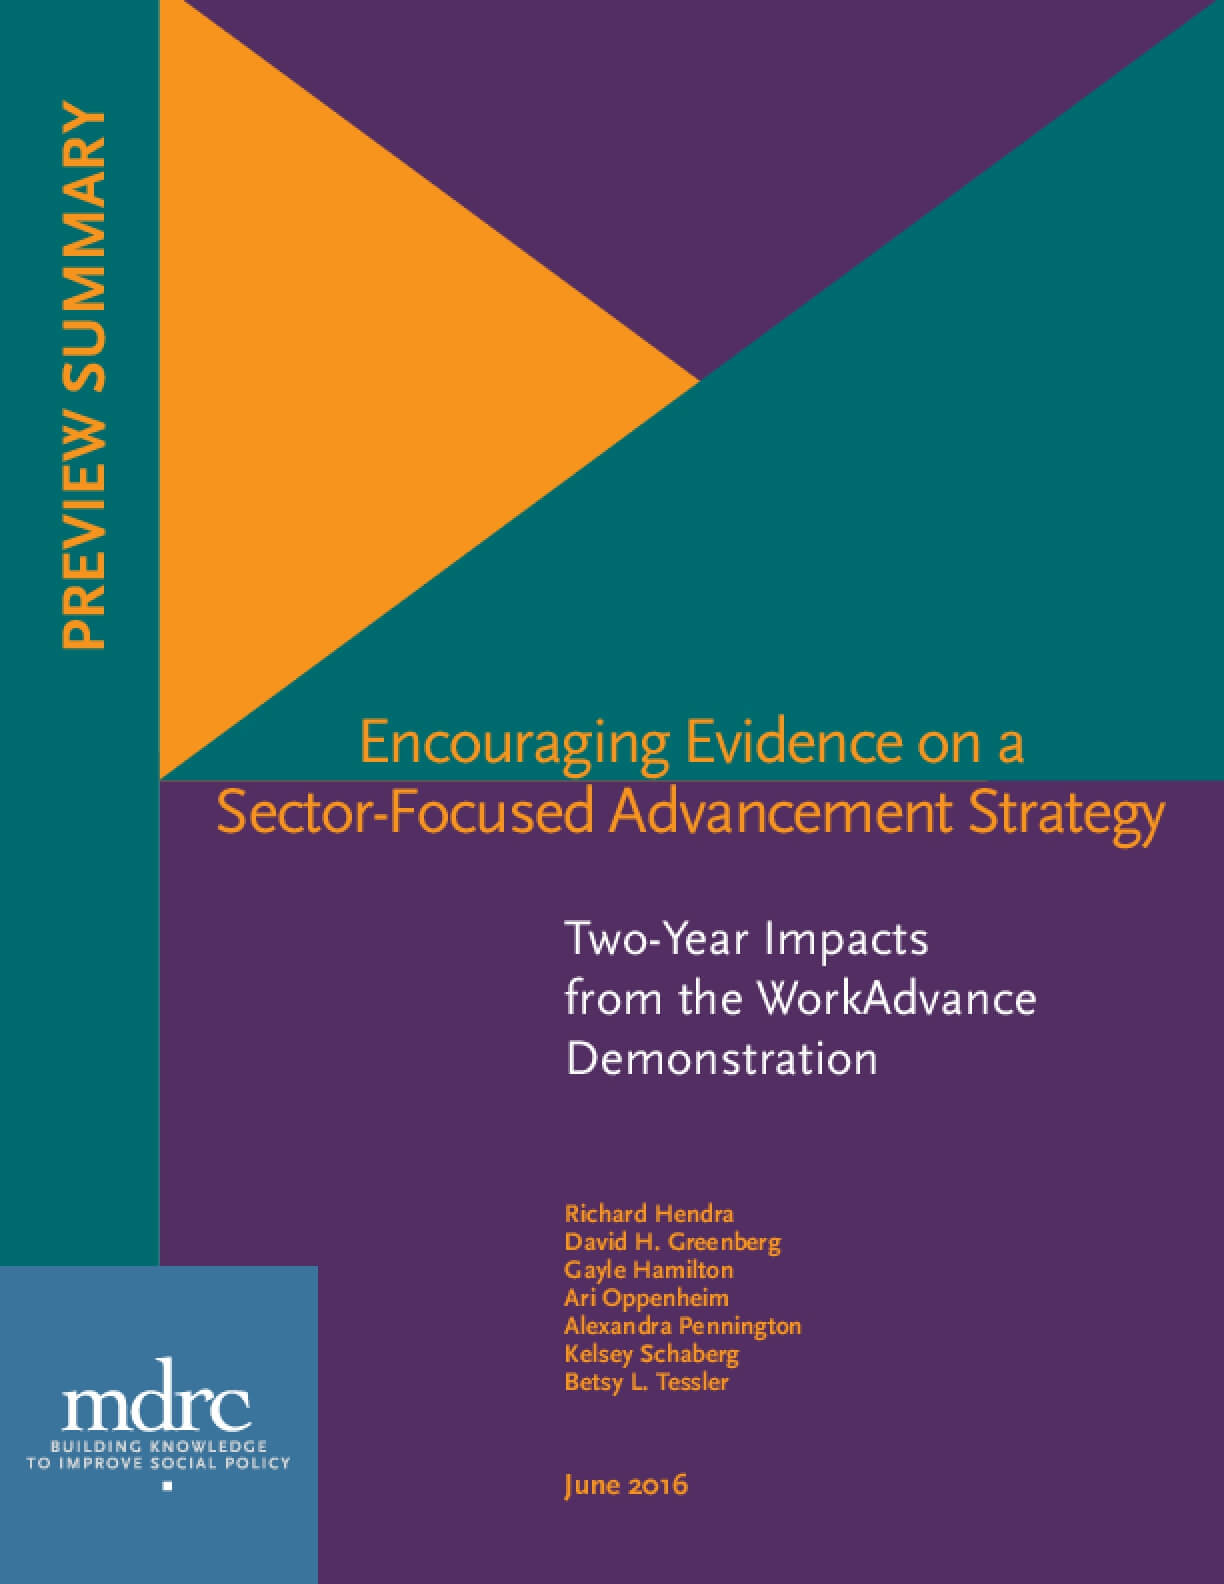 Encouraging Evidence on a Sector-Focused Advancement Strategy: Two-Year Impacts from the WorkAdvance Demonstration